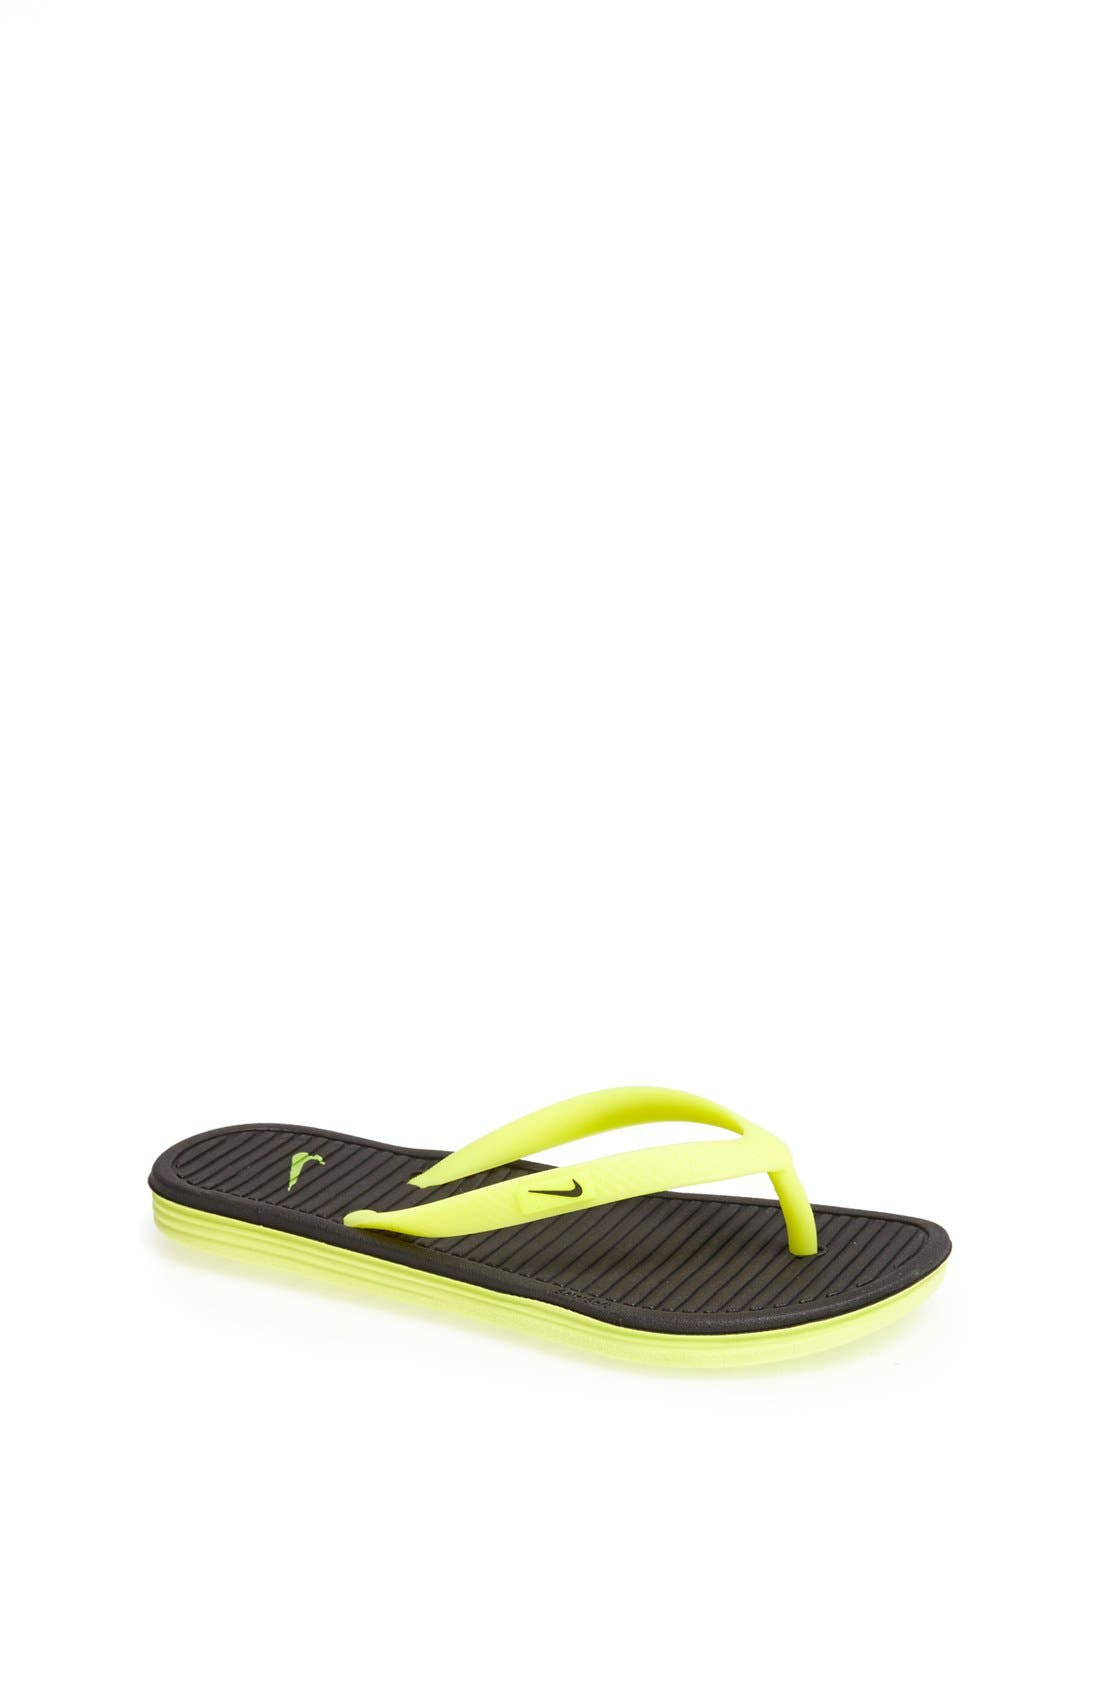 Main Image - Nike Solarsoft Thong Sandal (Toddler, Little Kid & Big Kid)